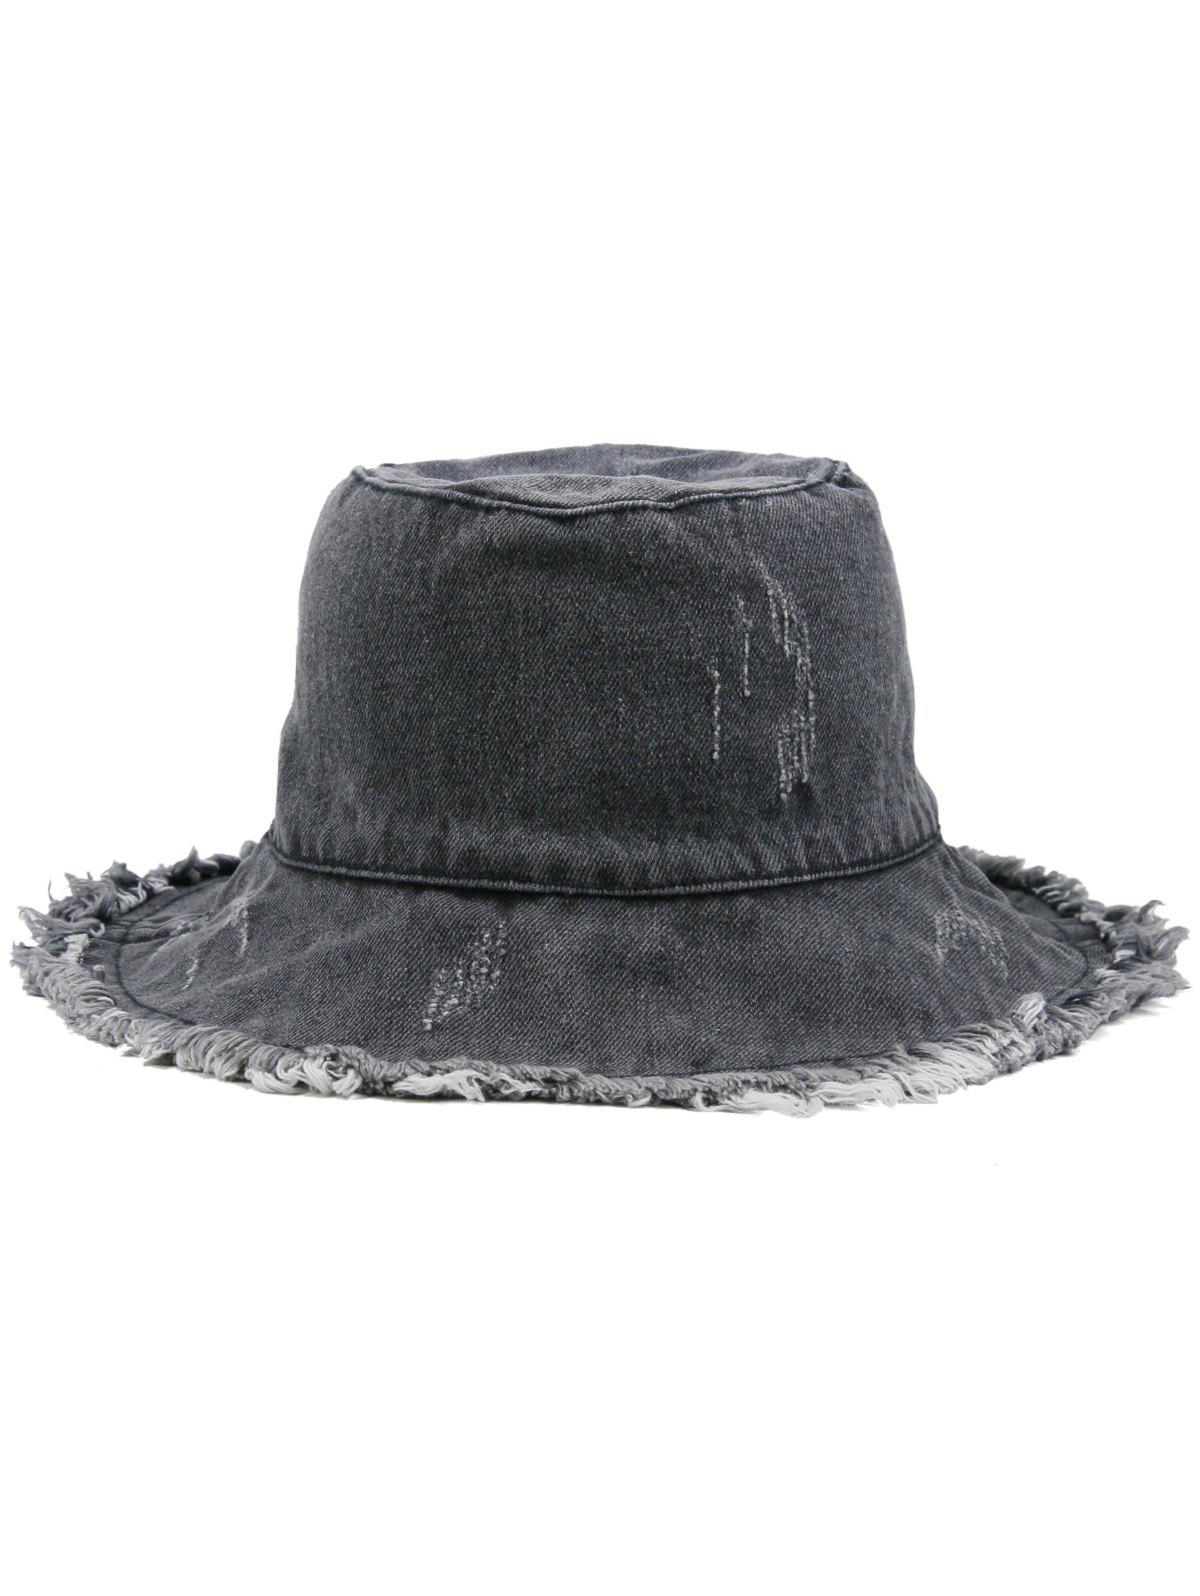 Washed Dyed Fringed Denim Fisherman Hat - GRAY